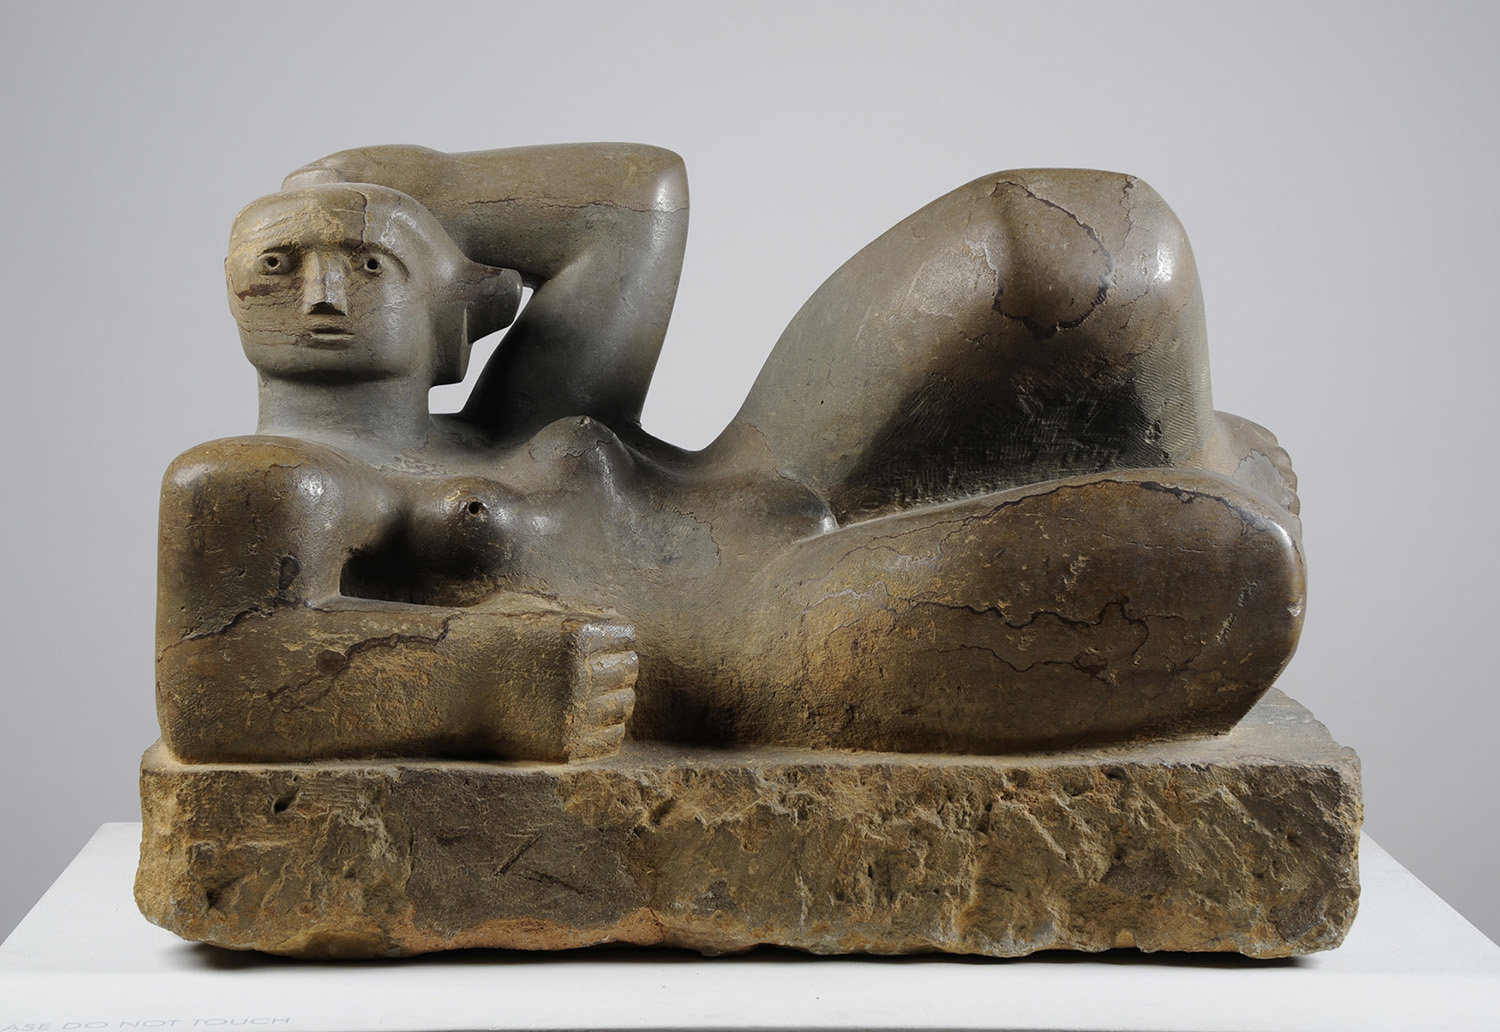 Henry Moore Reclining Figure 1929 (LH 59)